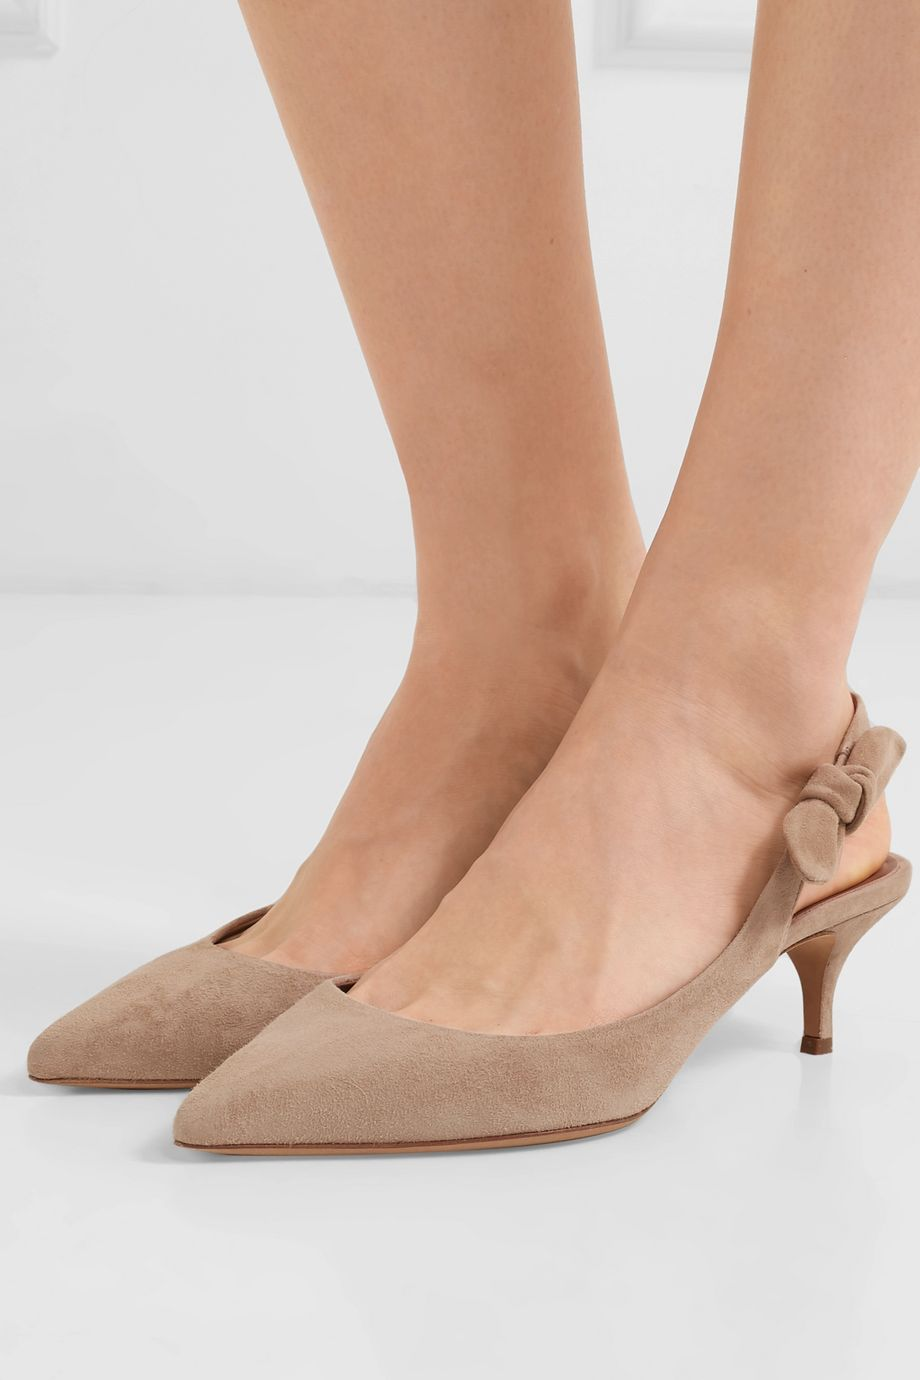 Tabitha Simmons Rise bow-embellished suede slingback pumps